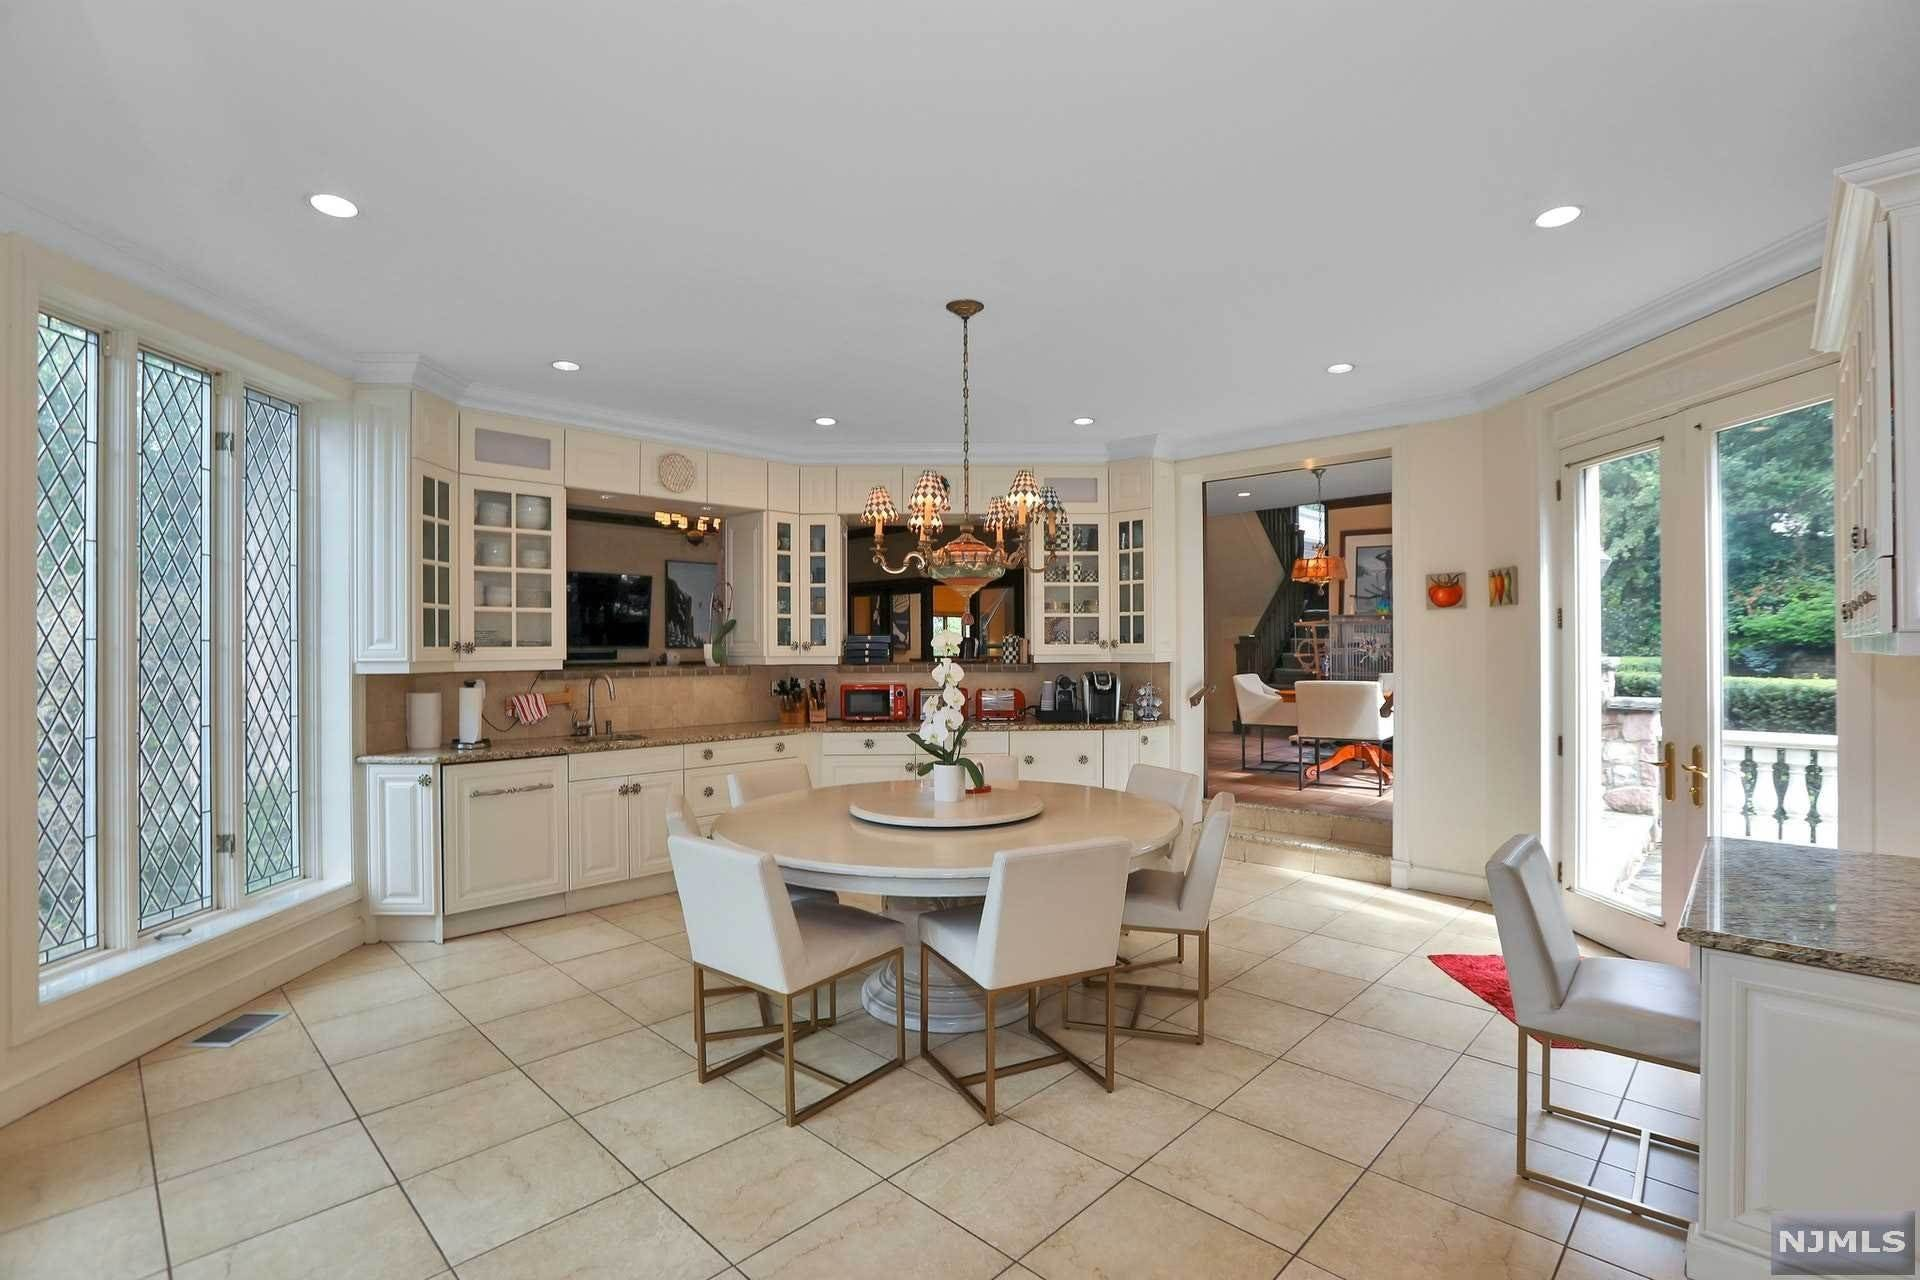 21 Chestnut Court A Luxury Home For Sale In Englewood Bergen County New Jersey Property Id 20039615 Christie S International Real Estate